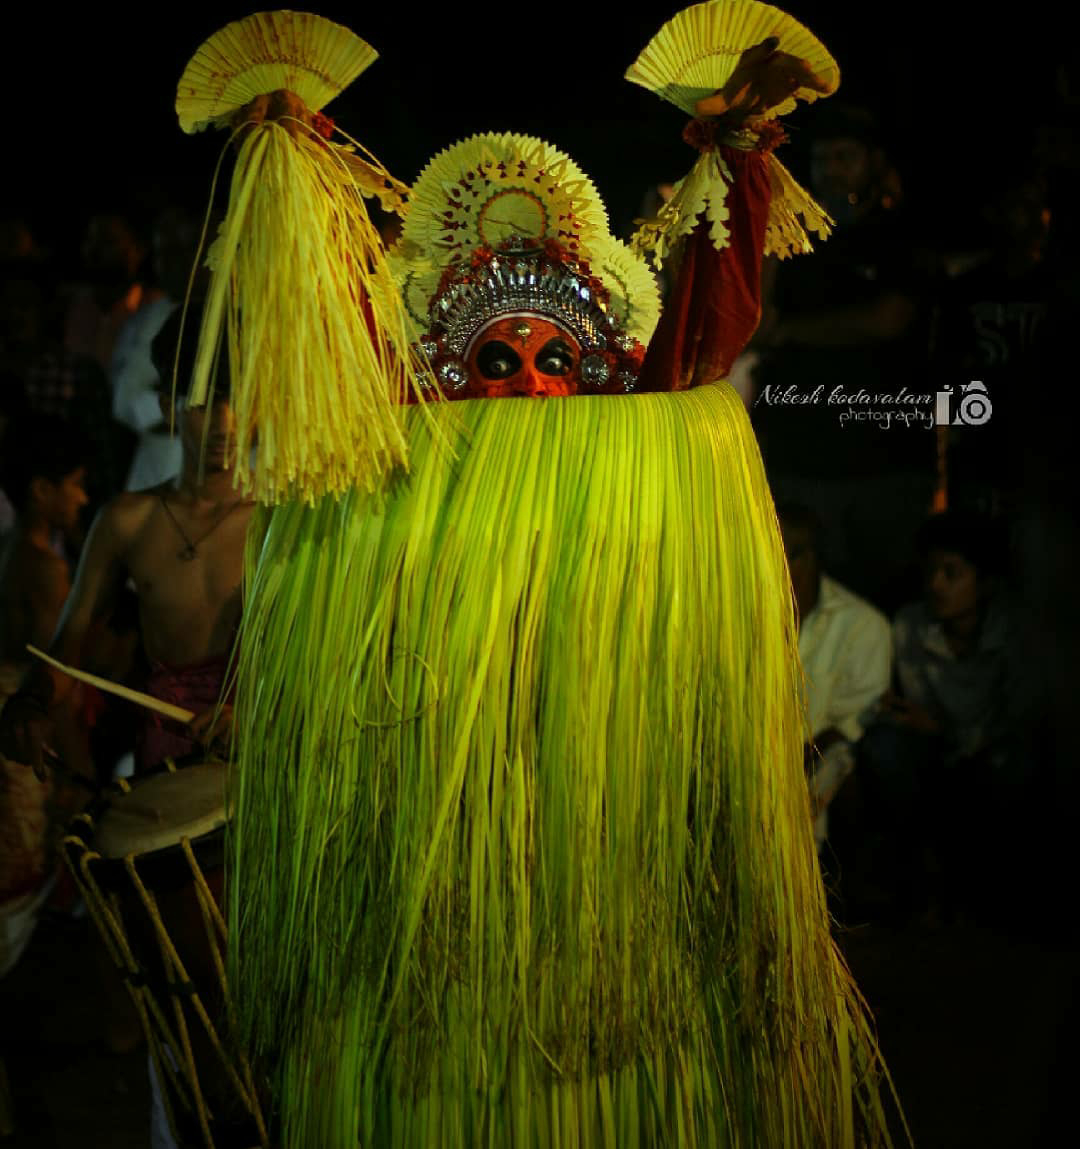 Thee Chamundi theyyam Photo